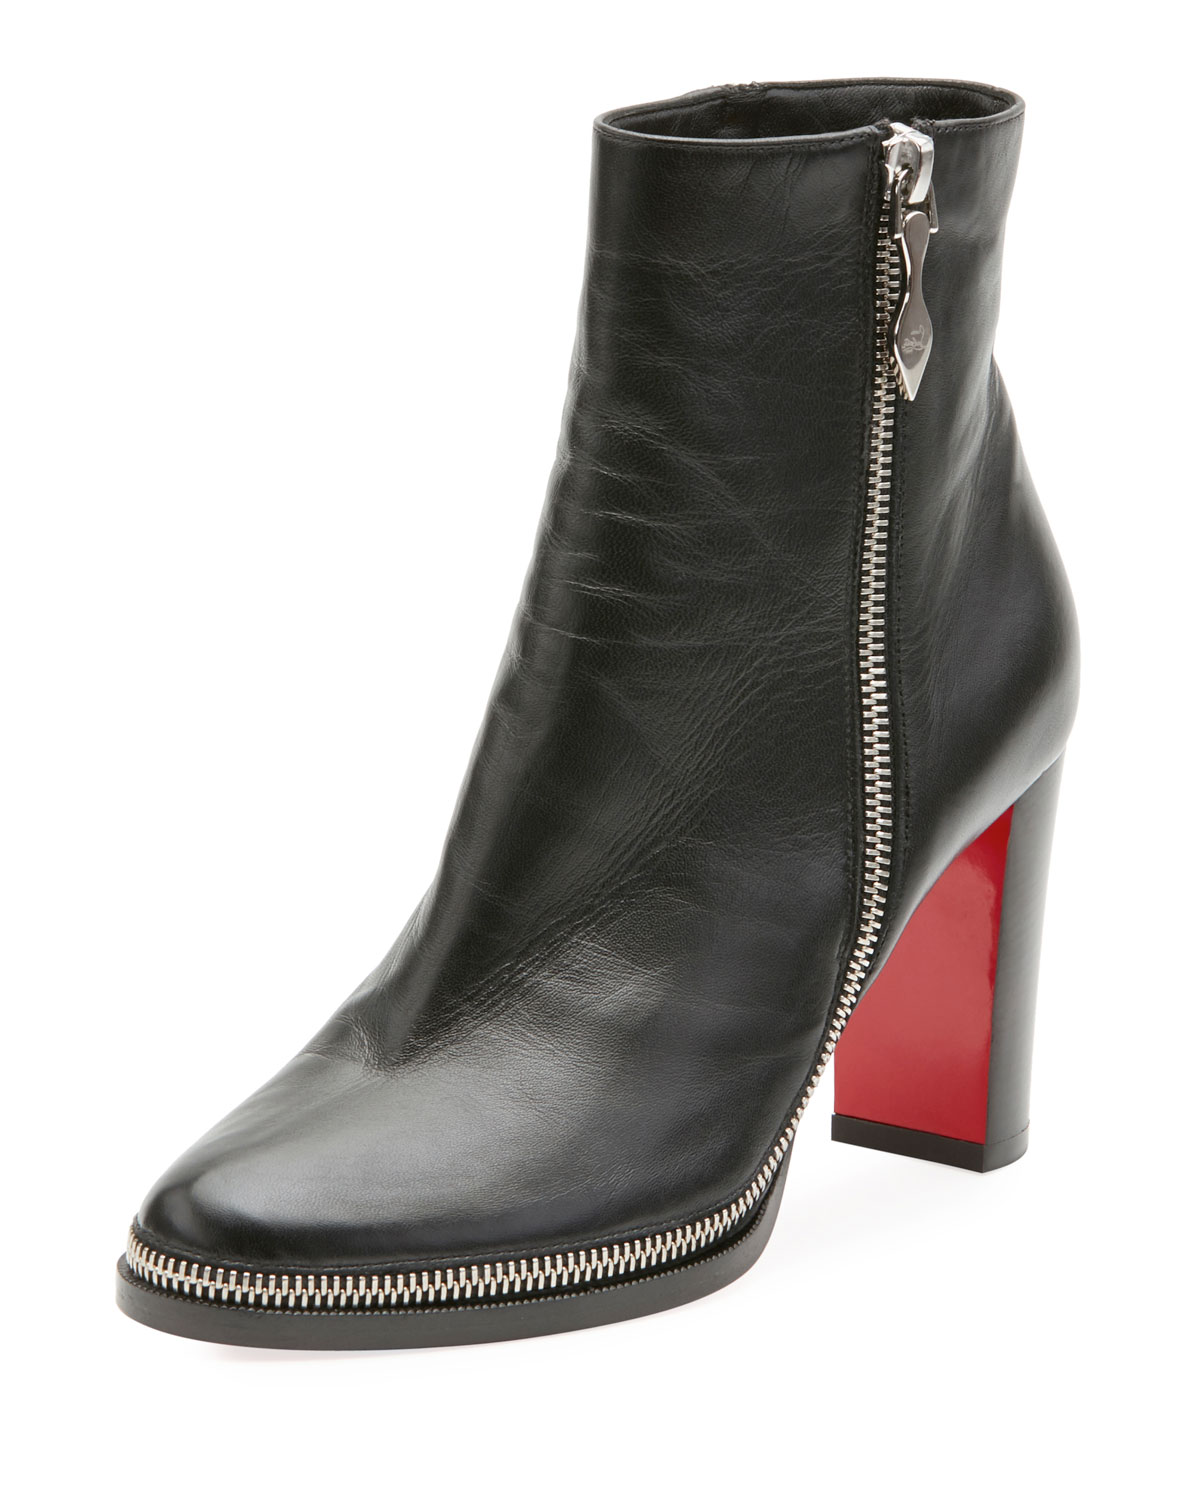 e4134b0387b Telezip Crinkled Red Sole Ankle Boot